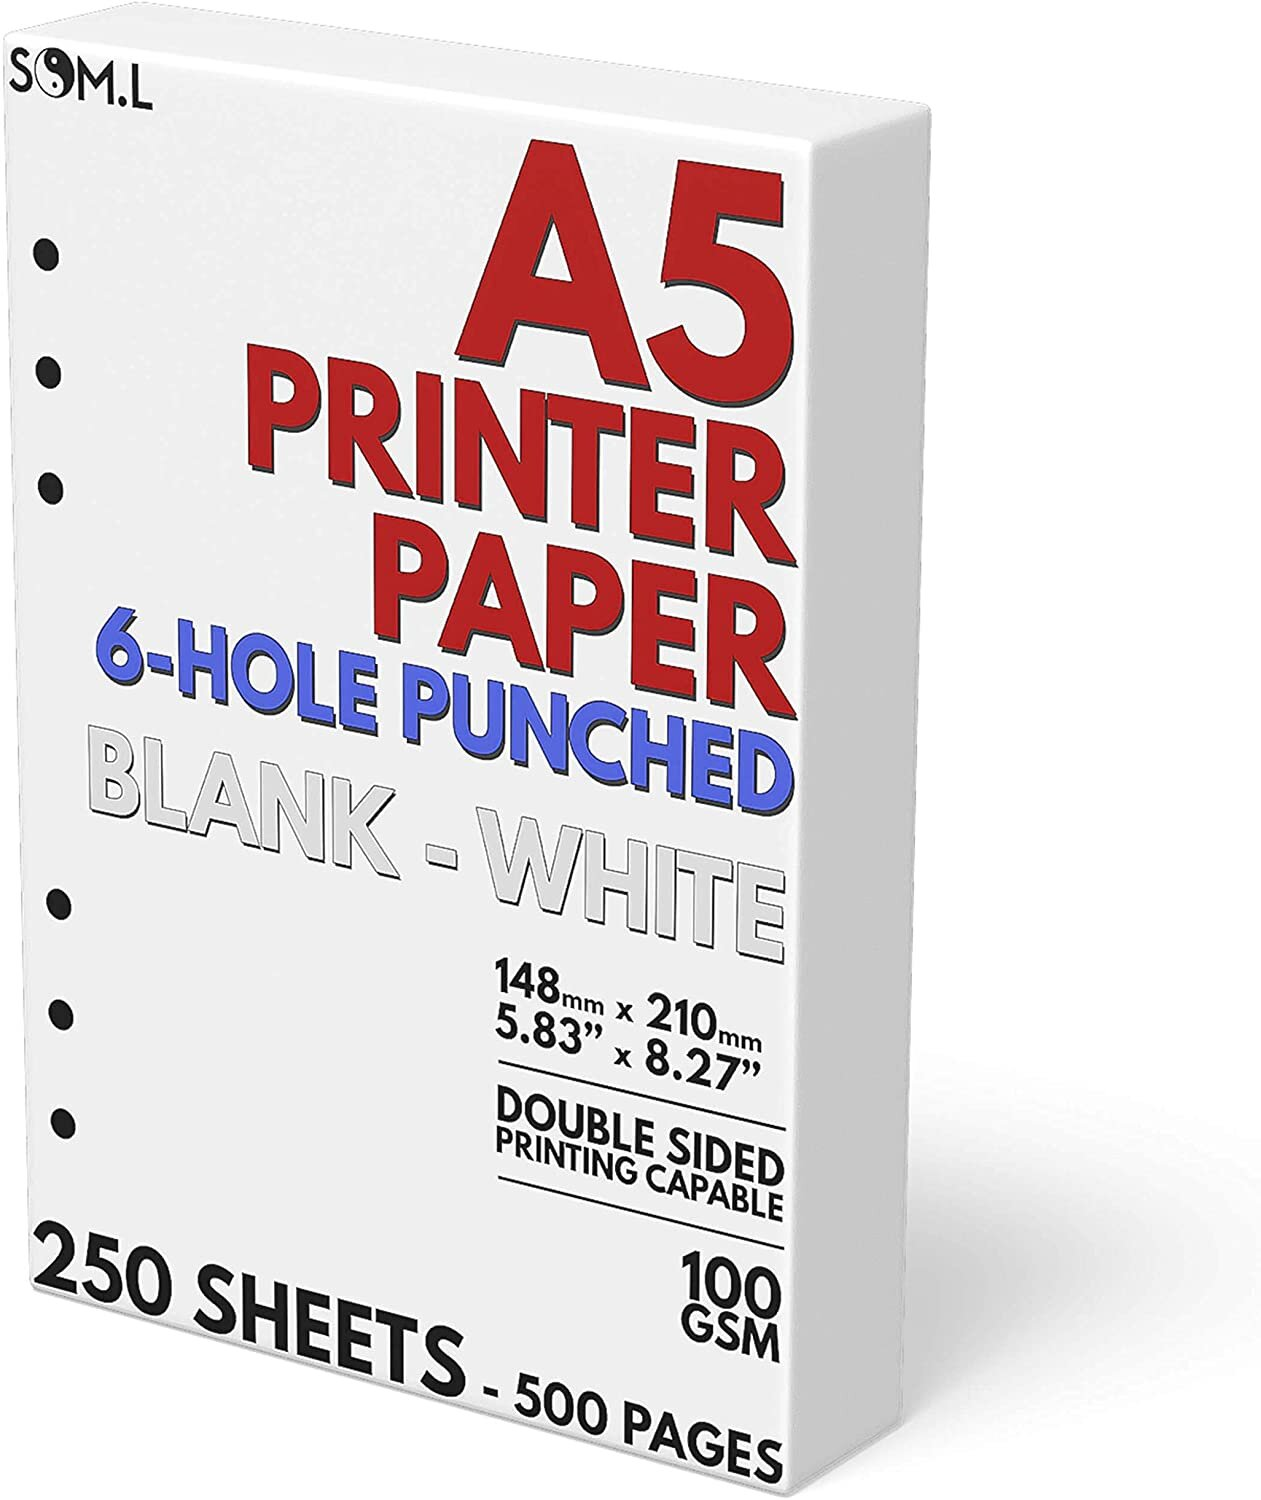 A5 Blank Paper 6-Hole Punched.jpg